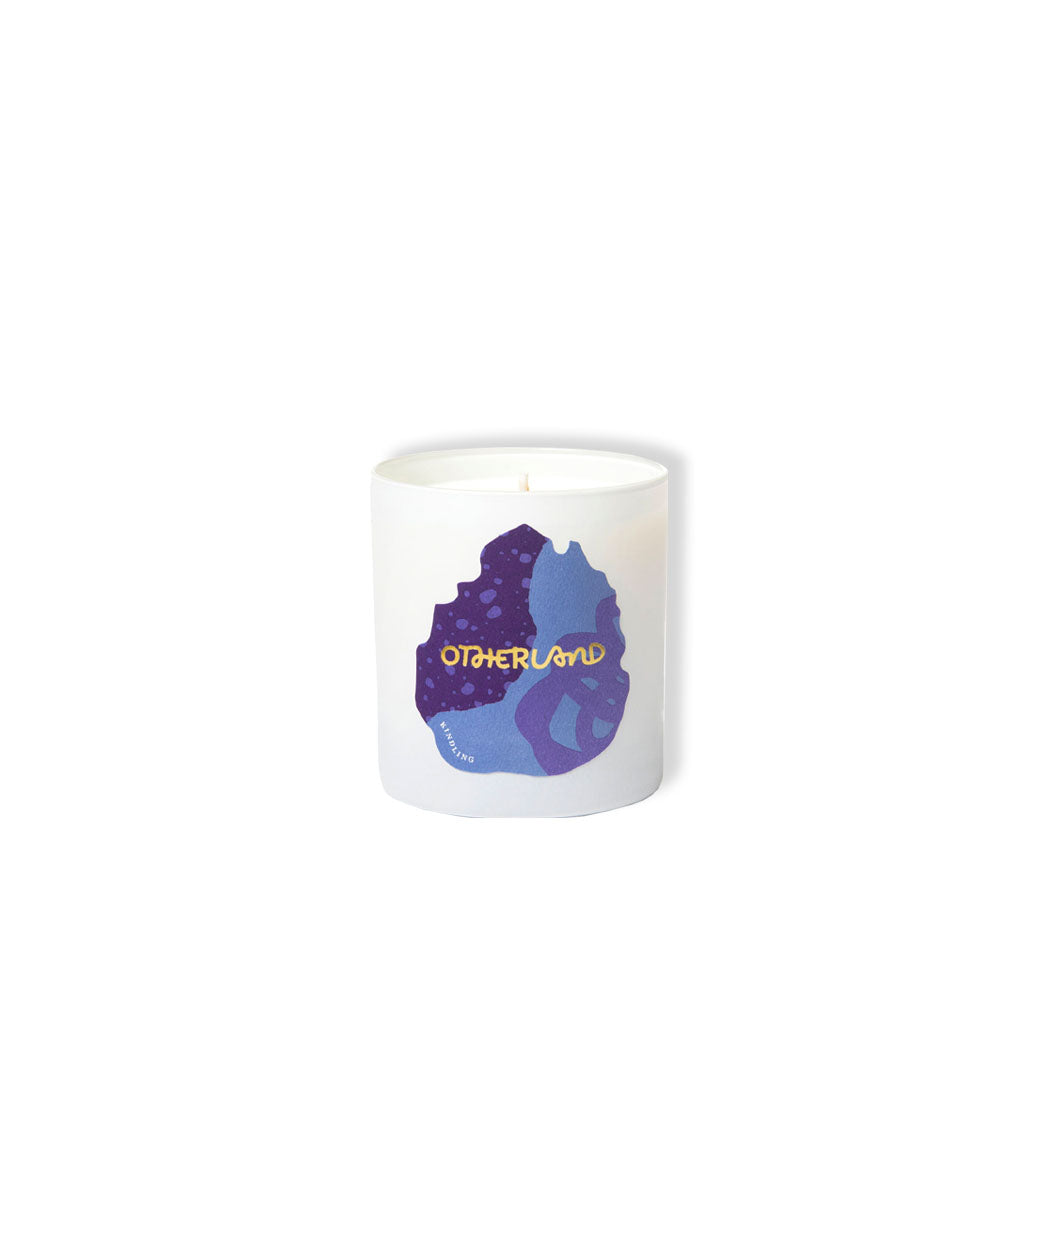 Otherland Candle - LEMON LAINE - Candles - Otherland